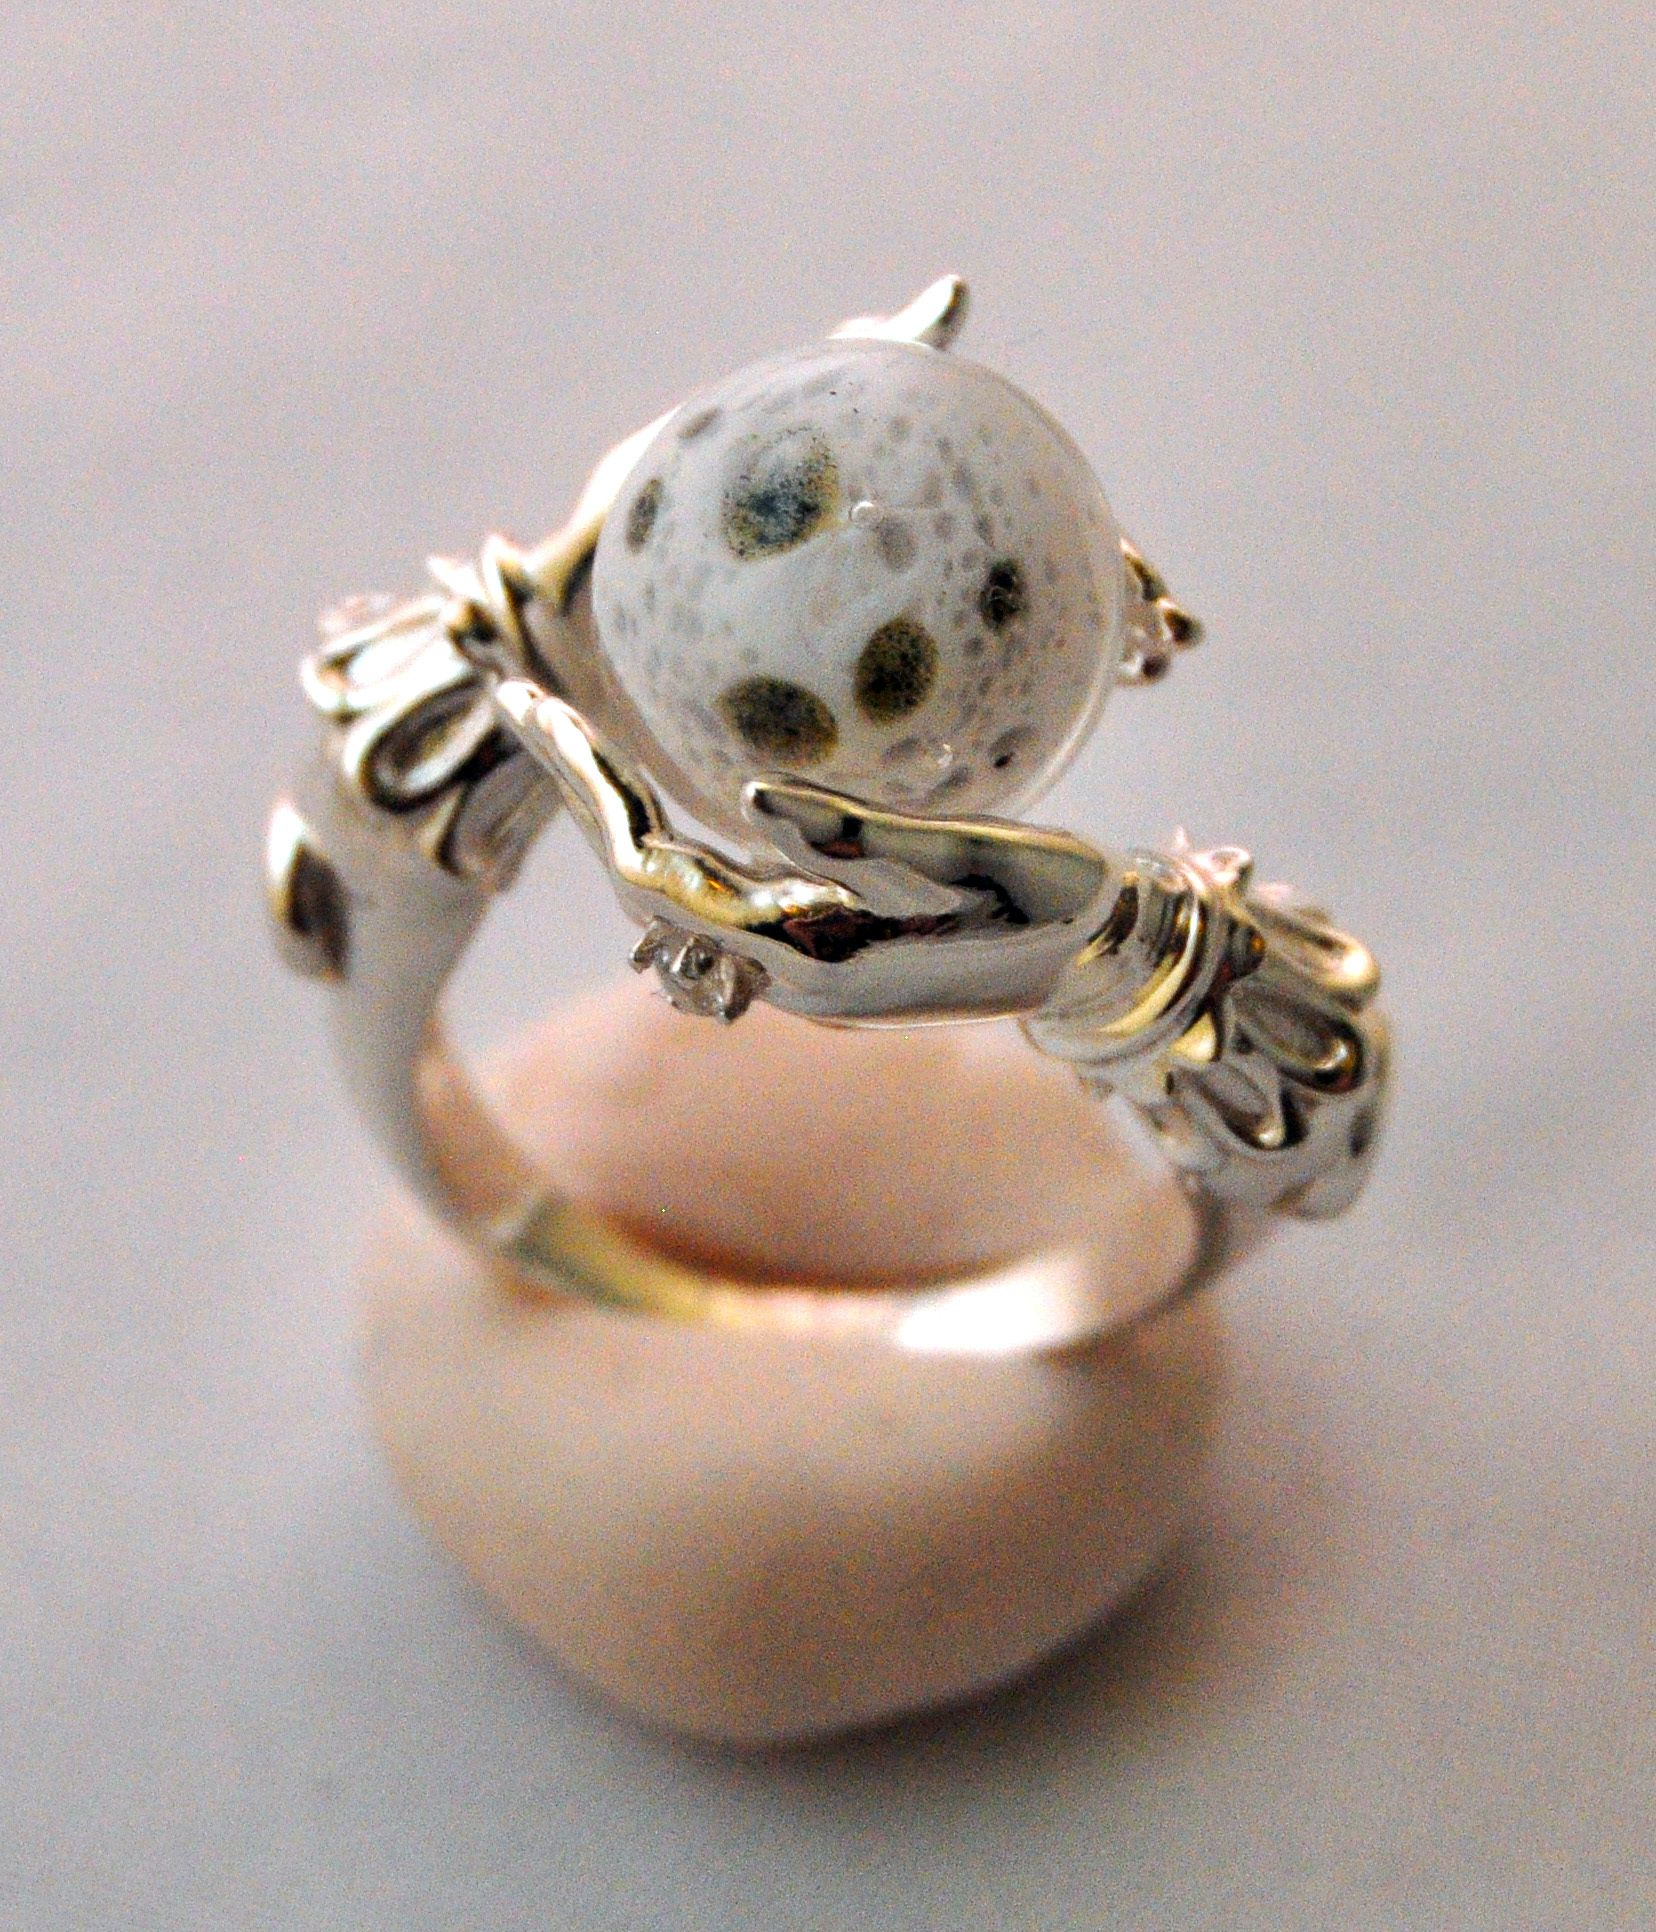 Celestial Lunar Oracle ring by Omnia Sterling silver with full moon